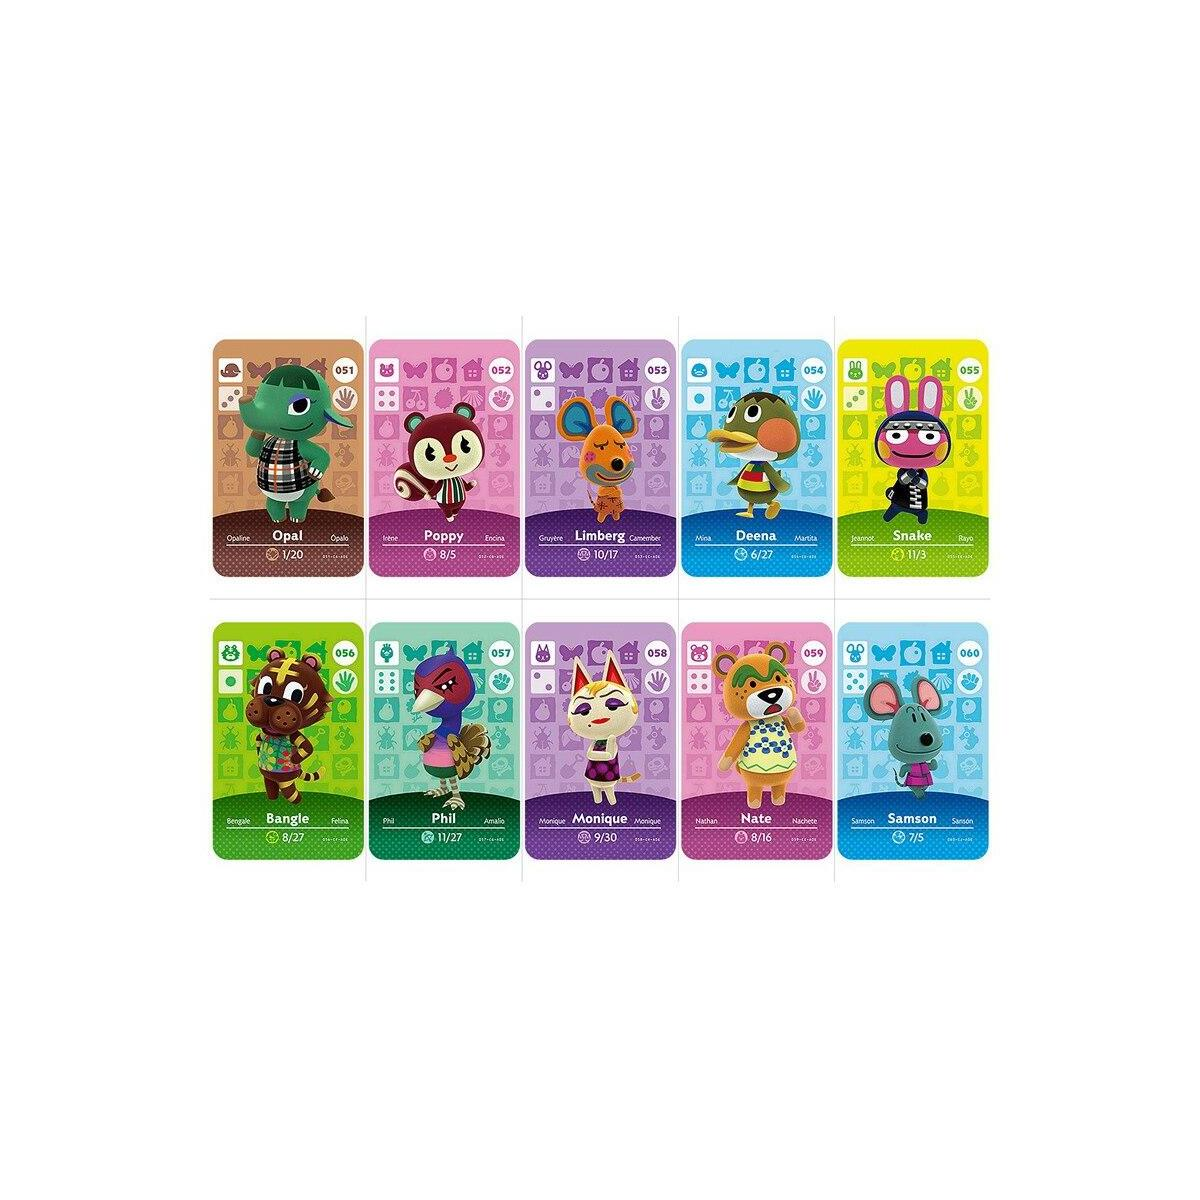 31 to 60 Animal Crossing Amiibo Cards Series 1, 043 Puck